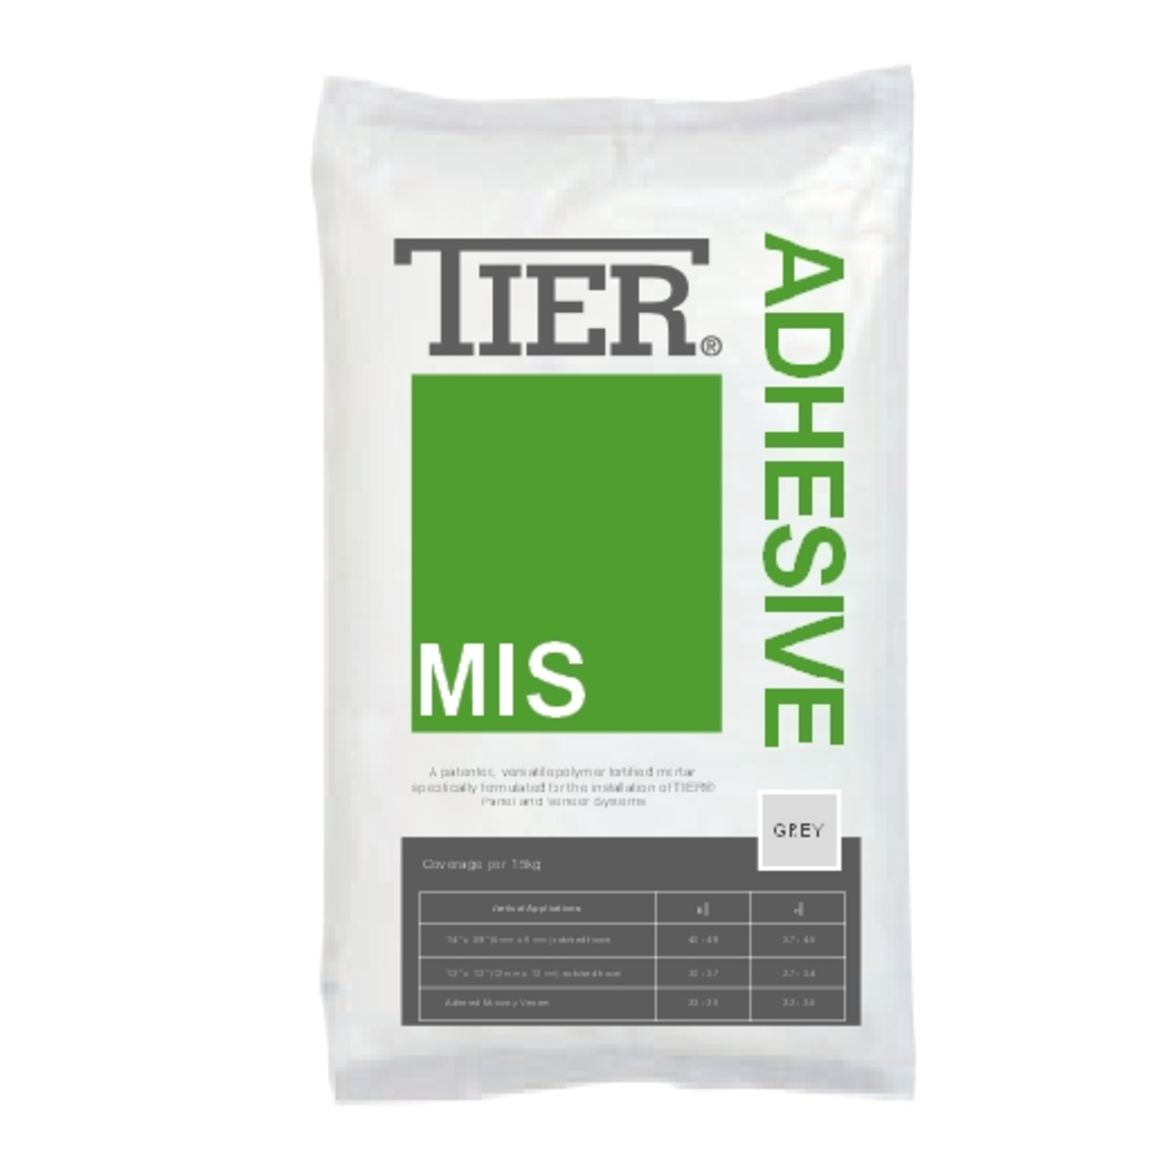 Tier Flexible Adhesive